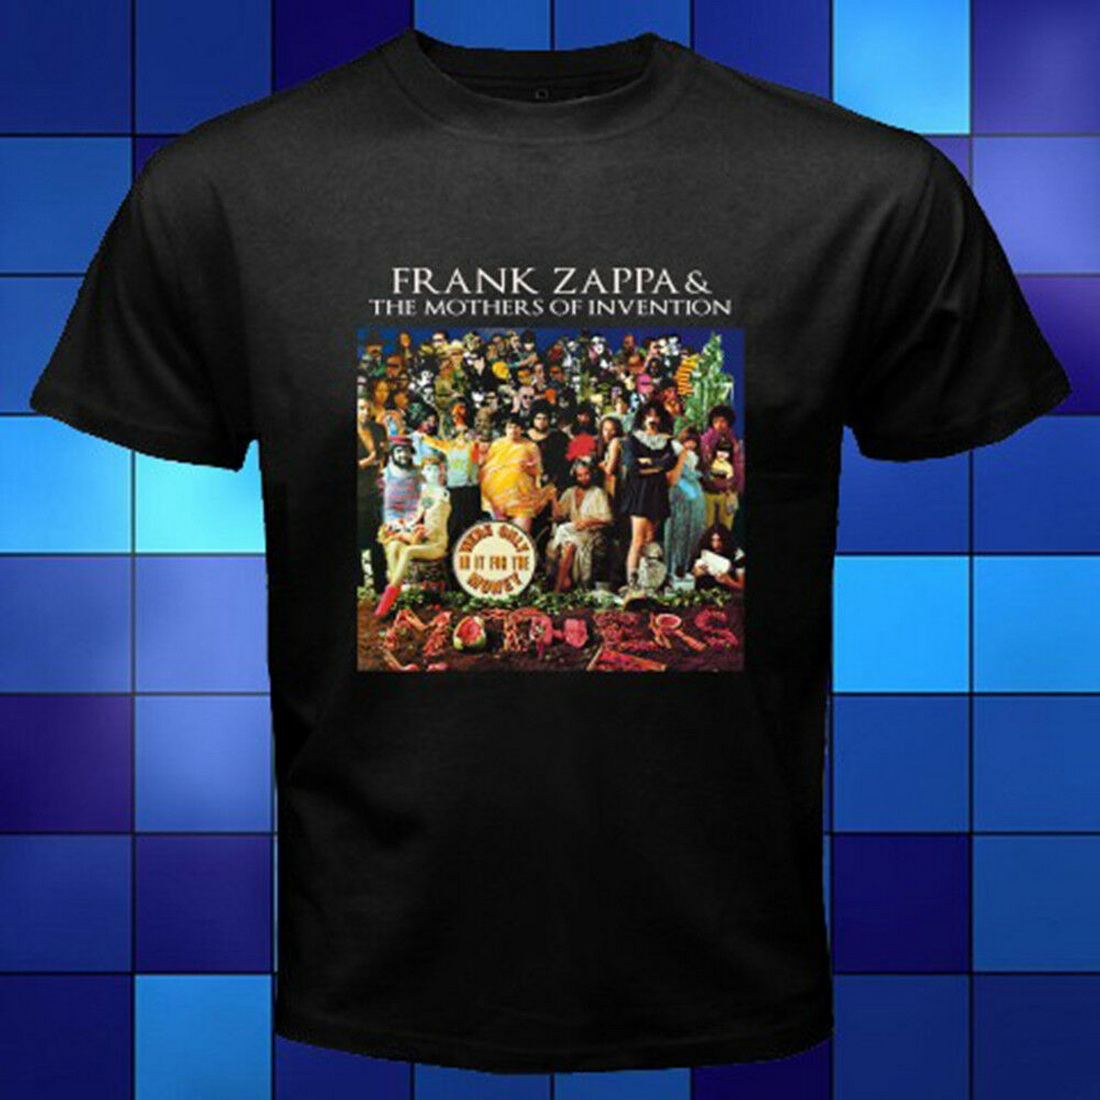 T-shirt uomo frase Frank Zappa without deviation from the norm no progress